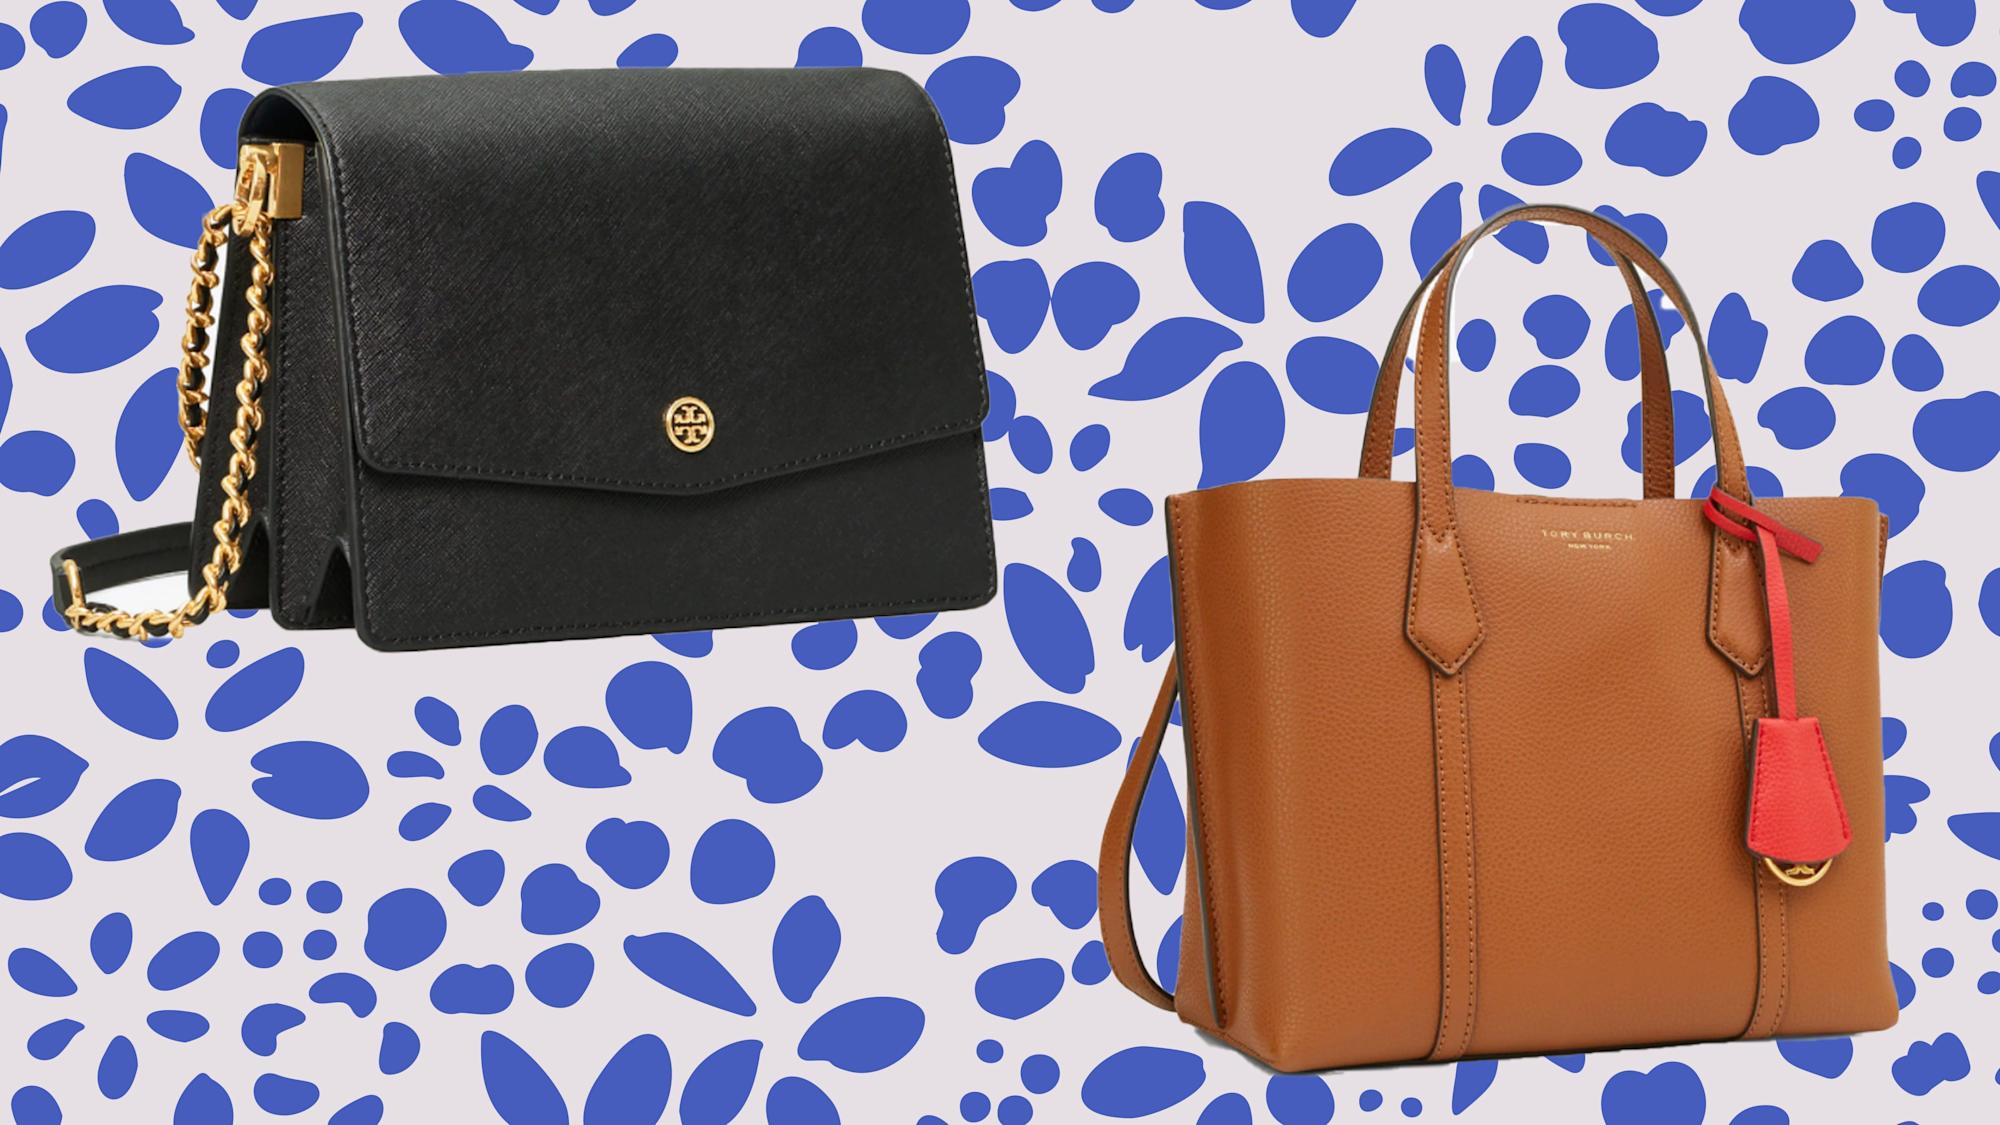 7 top-rated Tory Burch handbags and purses to get on sale from the spring event